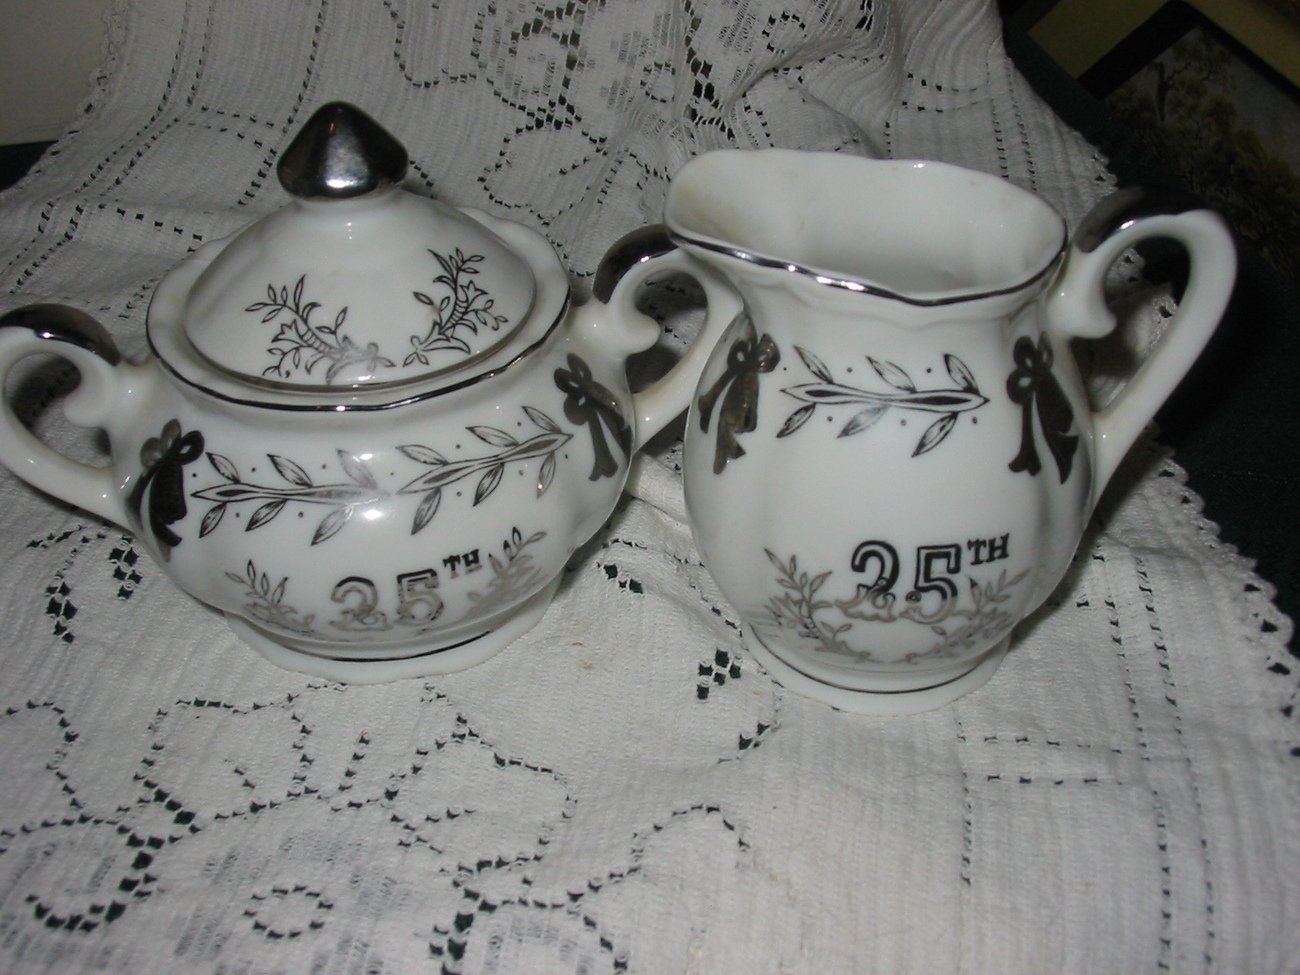 Lefton White with silver 25th Anniversary Creamer and Sugar Set - $10.00